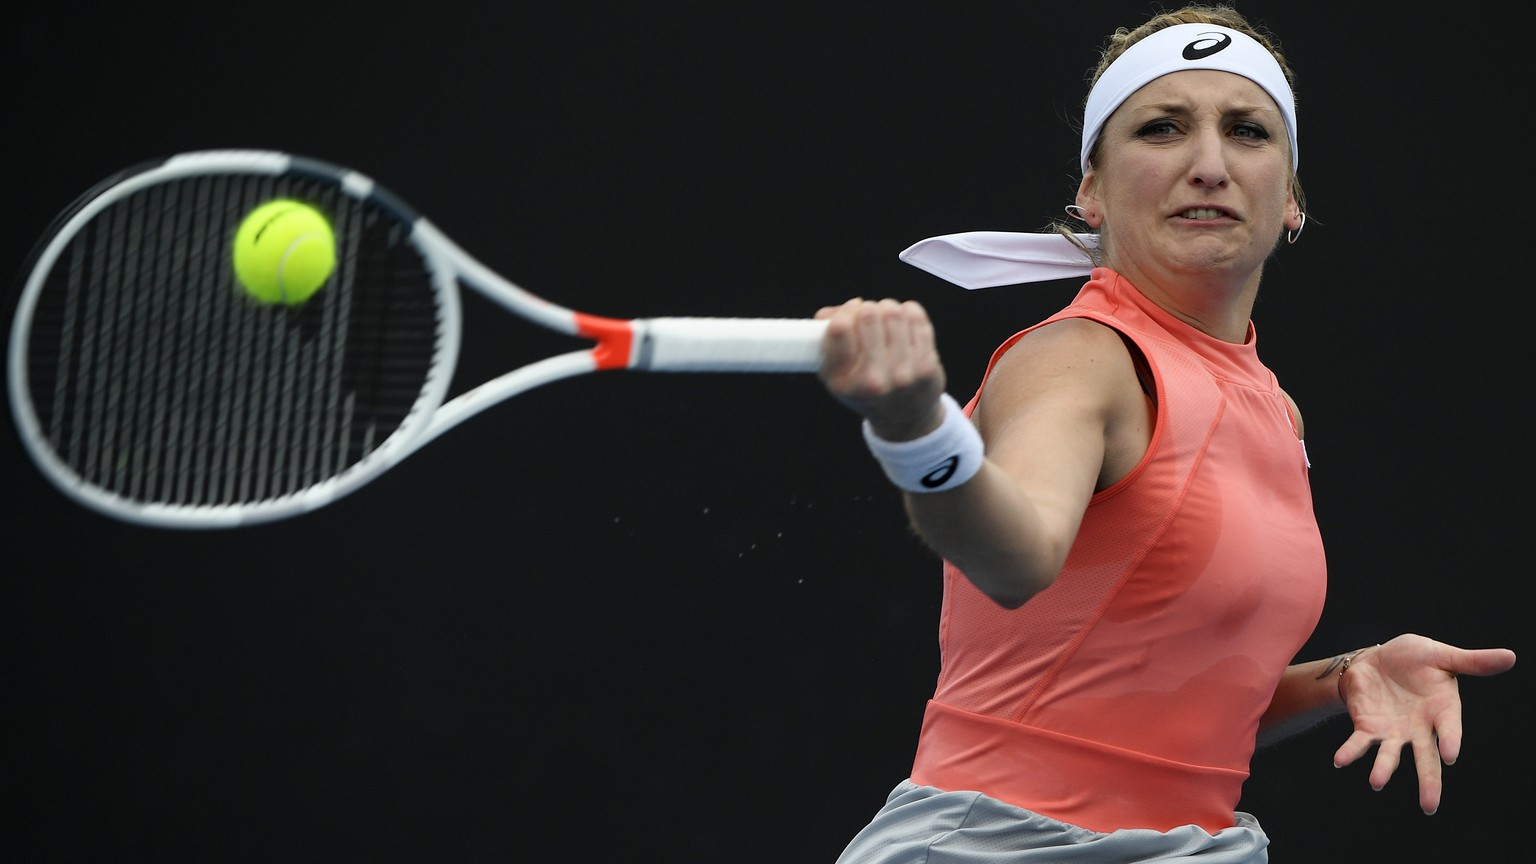 Switzerland's Timea Bacsinszky makes a forehand return to Russia's Daria Kasatkina during their first round match at the Australian Open tennis championships in Melbourne, Australia, Tuesday, Jan. 15, 2019. (AP Photo/Andy Brownbill)